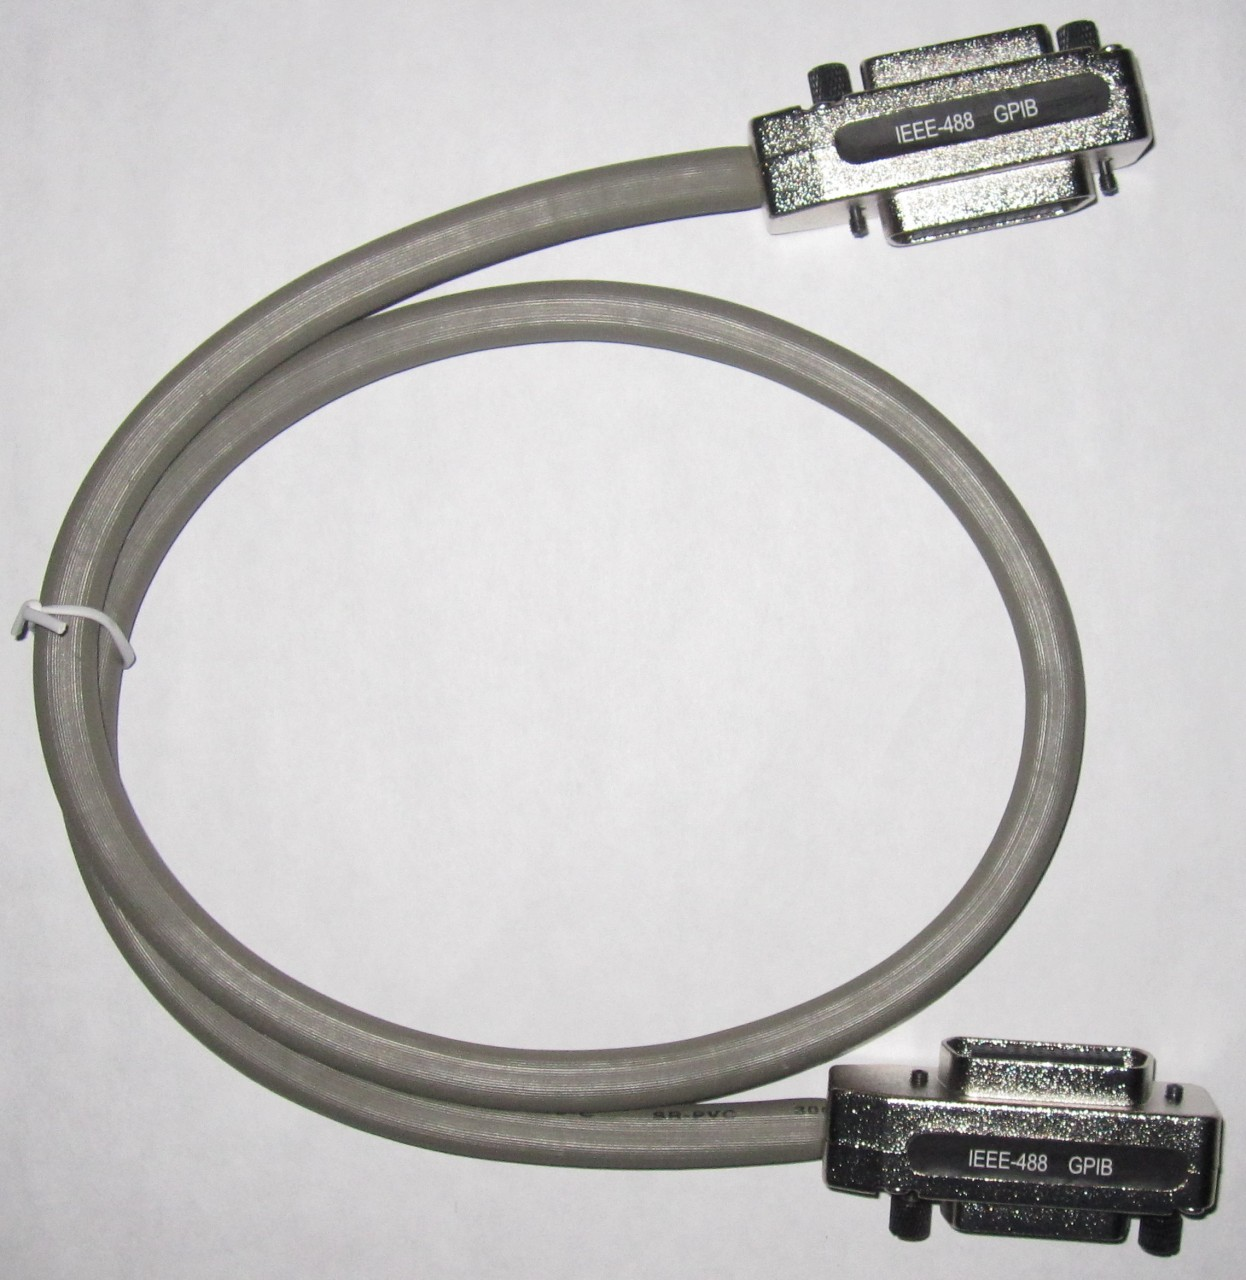 IEEE 488 Cable